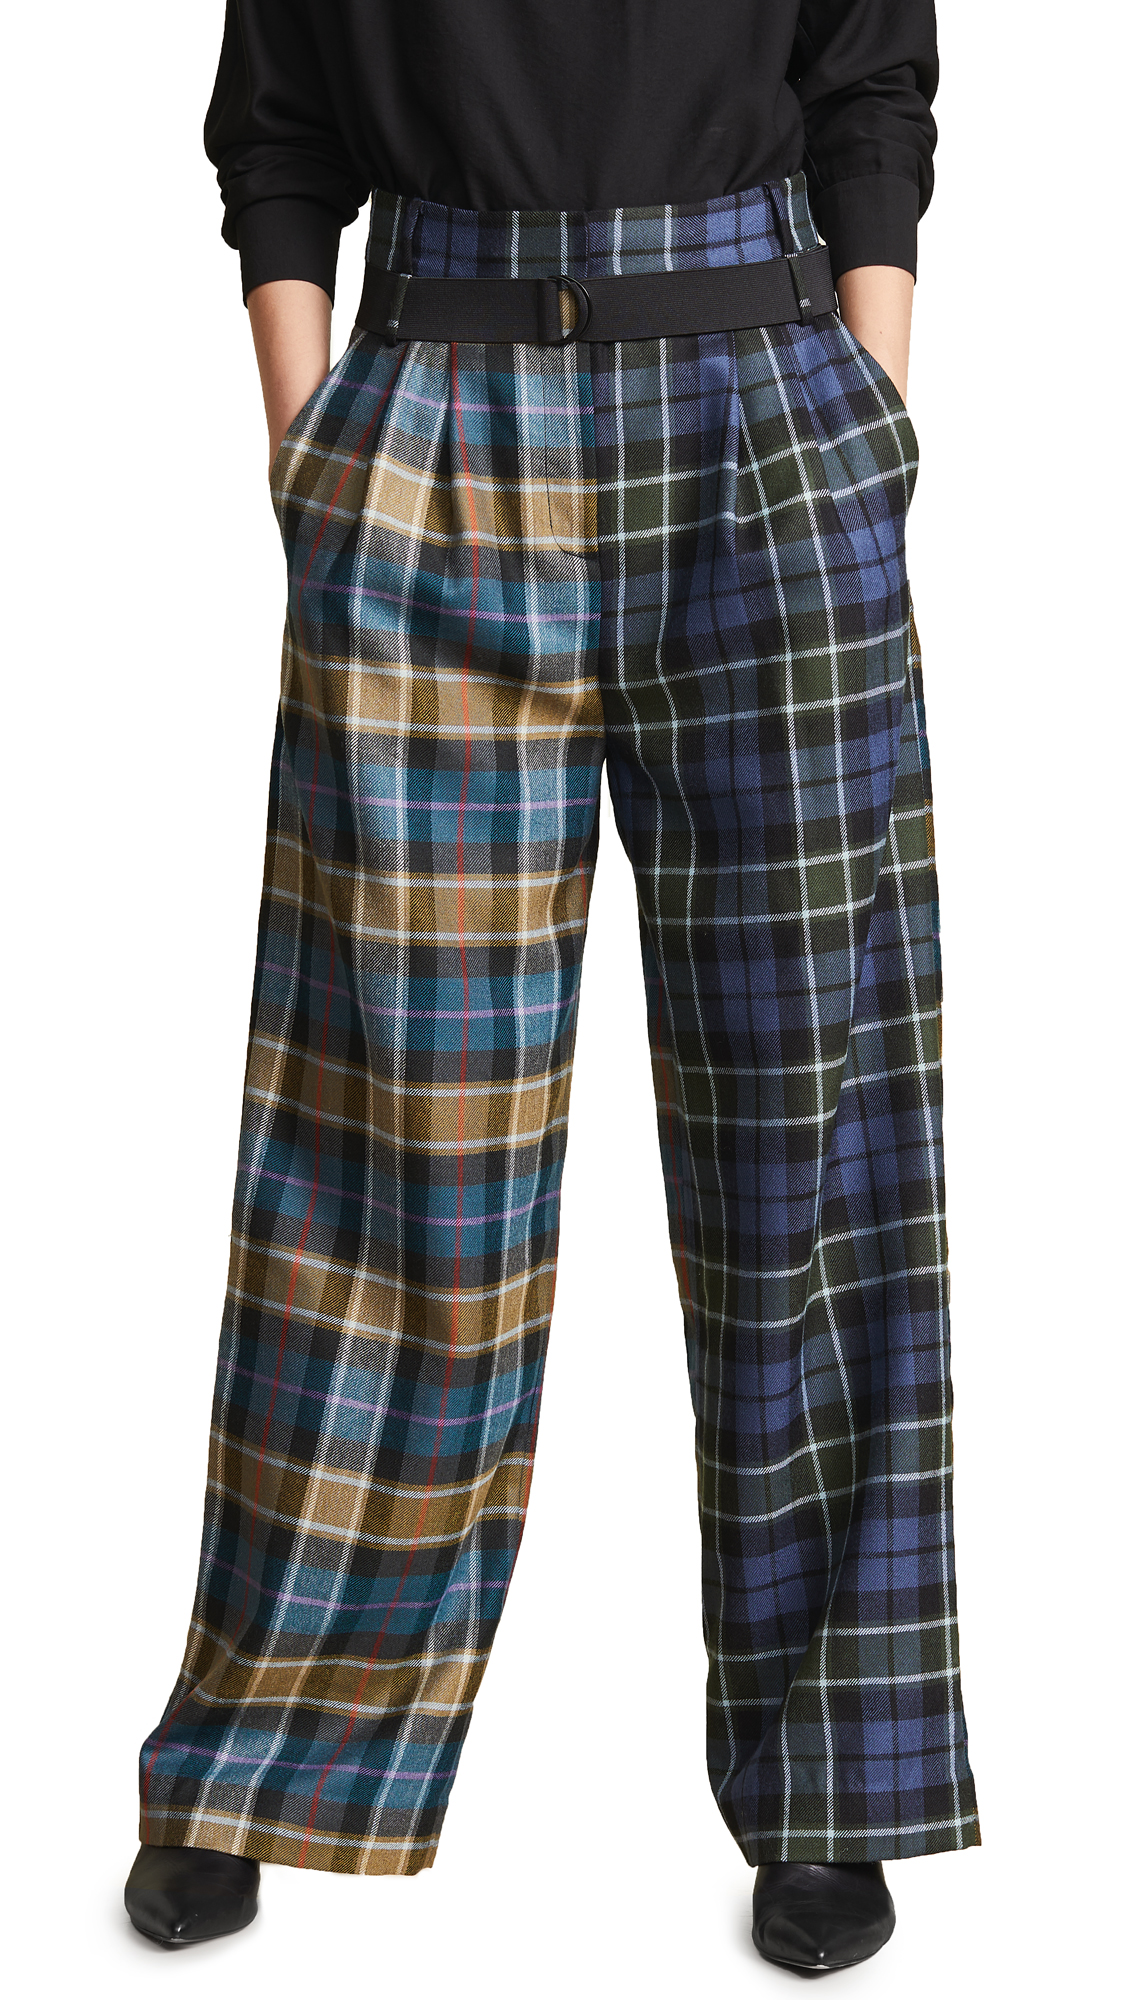 TIBI TARTAN PLEATED PANTS WITH BELT